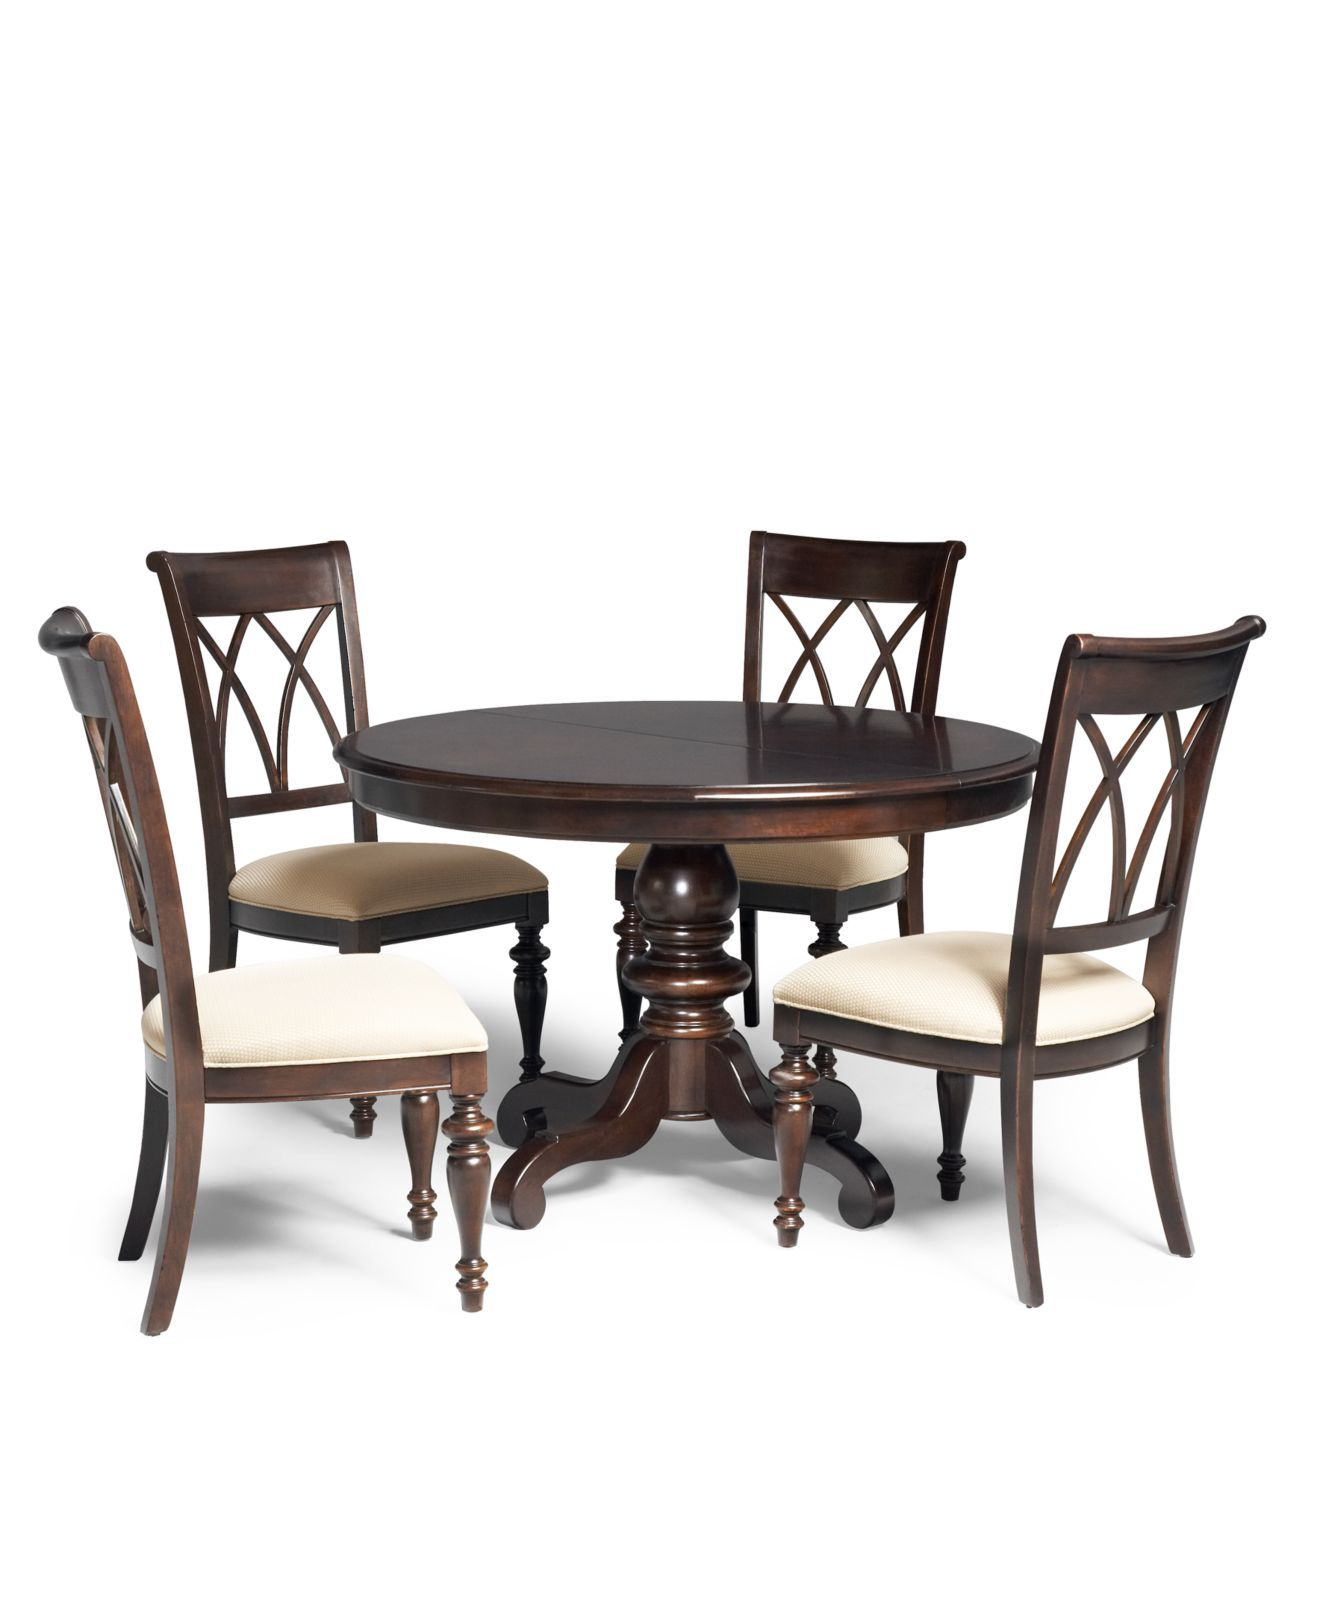 Bradford Dining Room Furniture 5 Piece Set Round Table And 4 Prepossessing Macys Dining Room Chairs Decorating Design